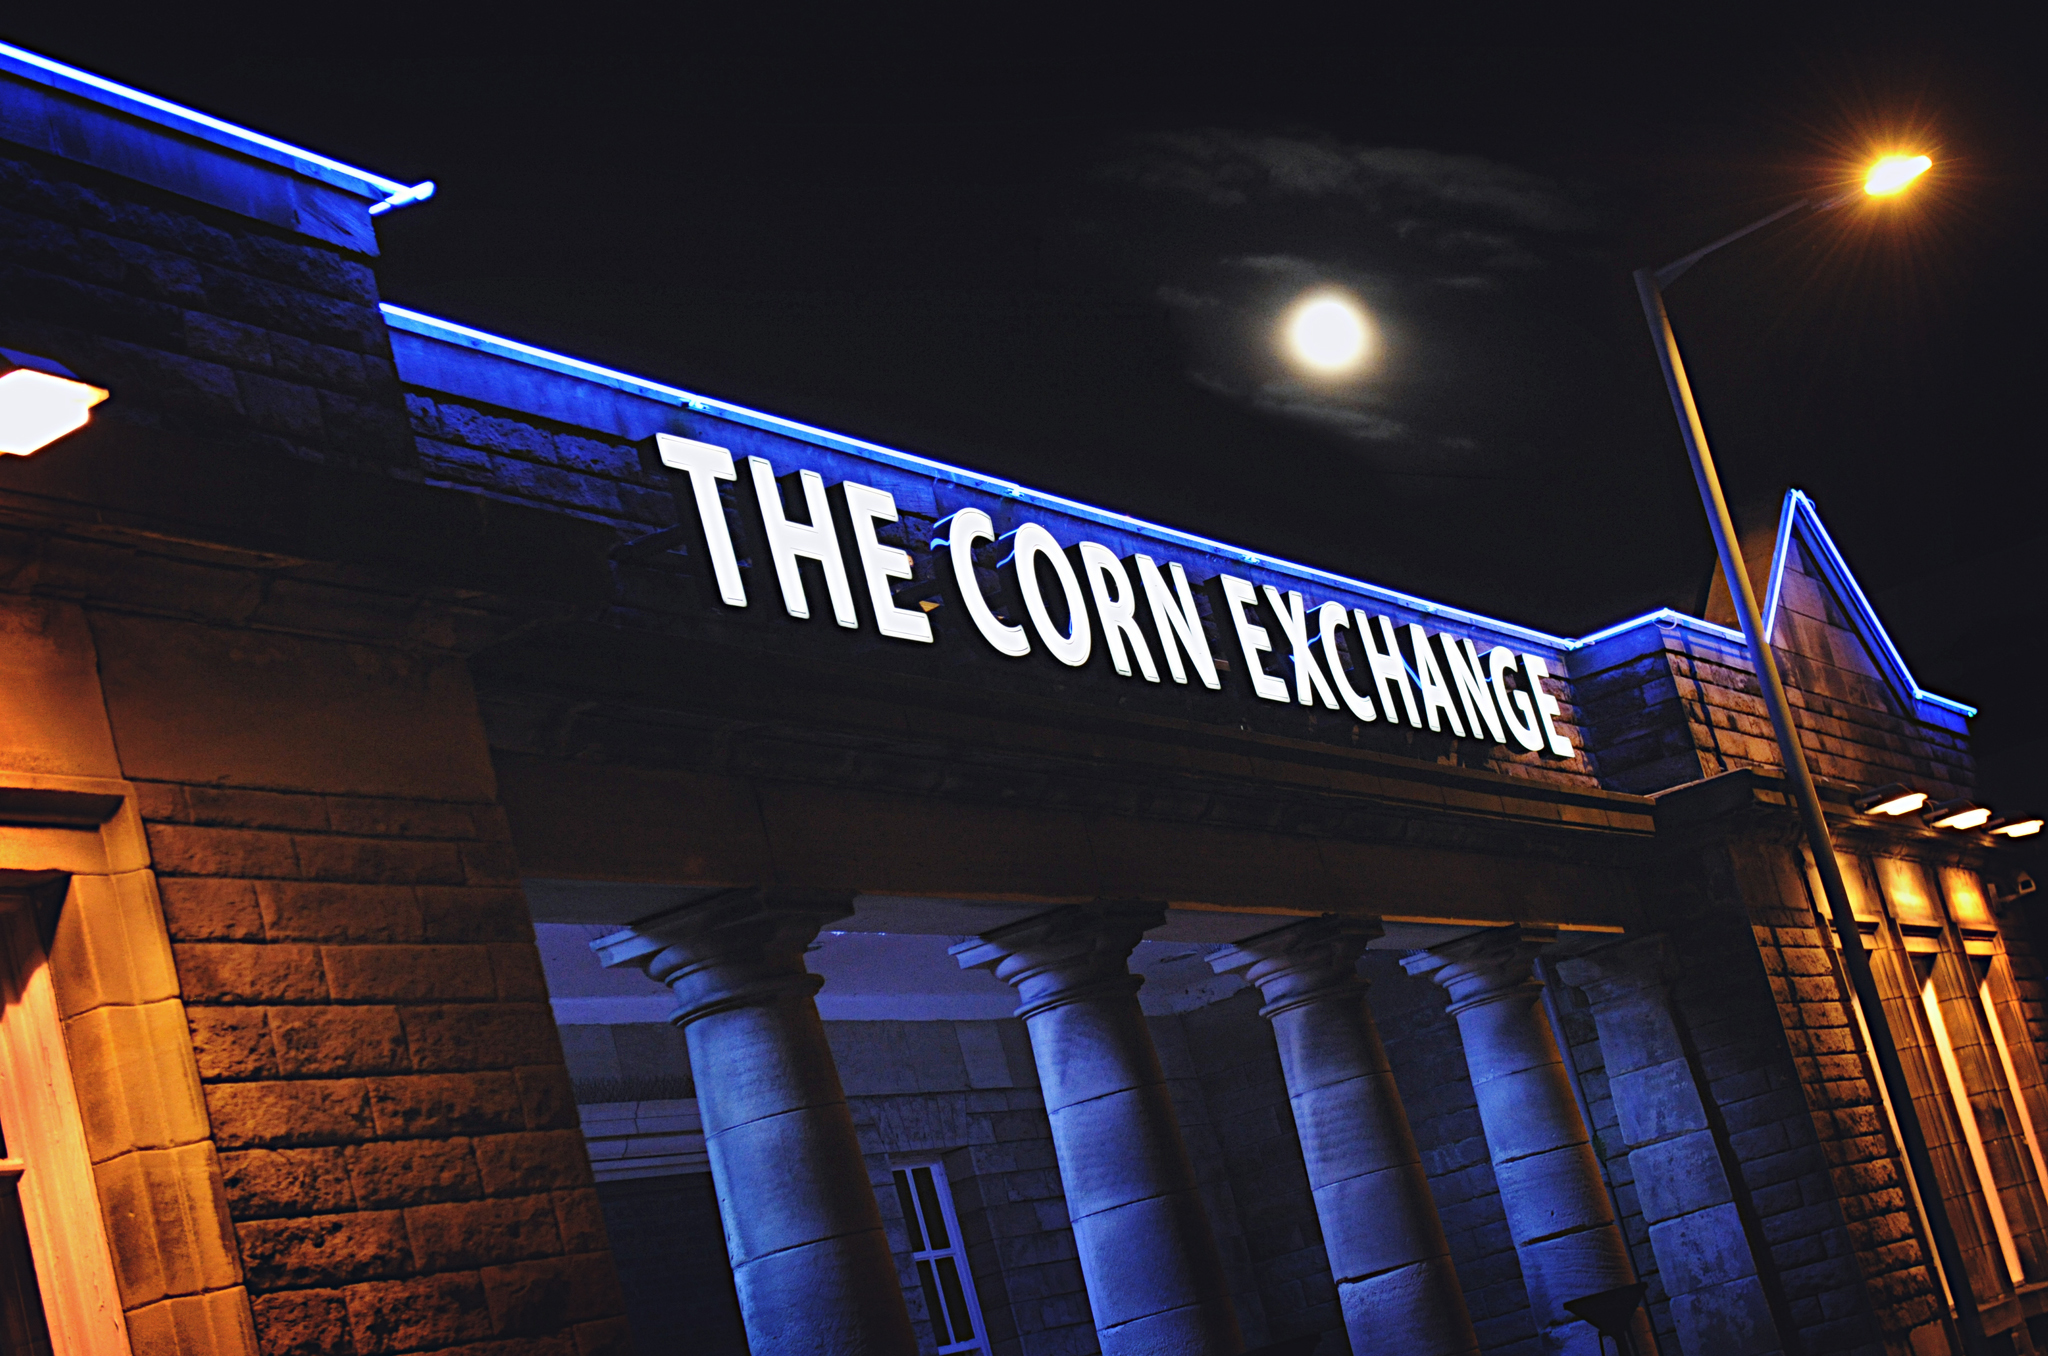 Edinburgh, Corn Exchange